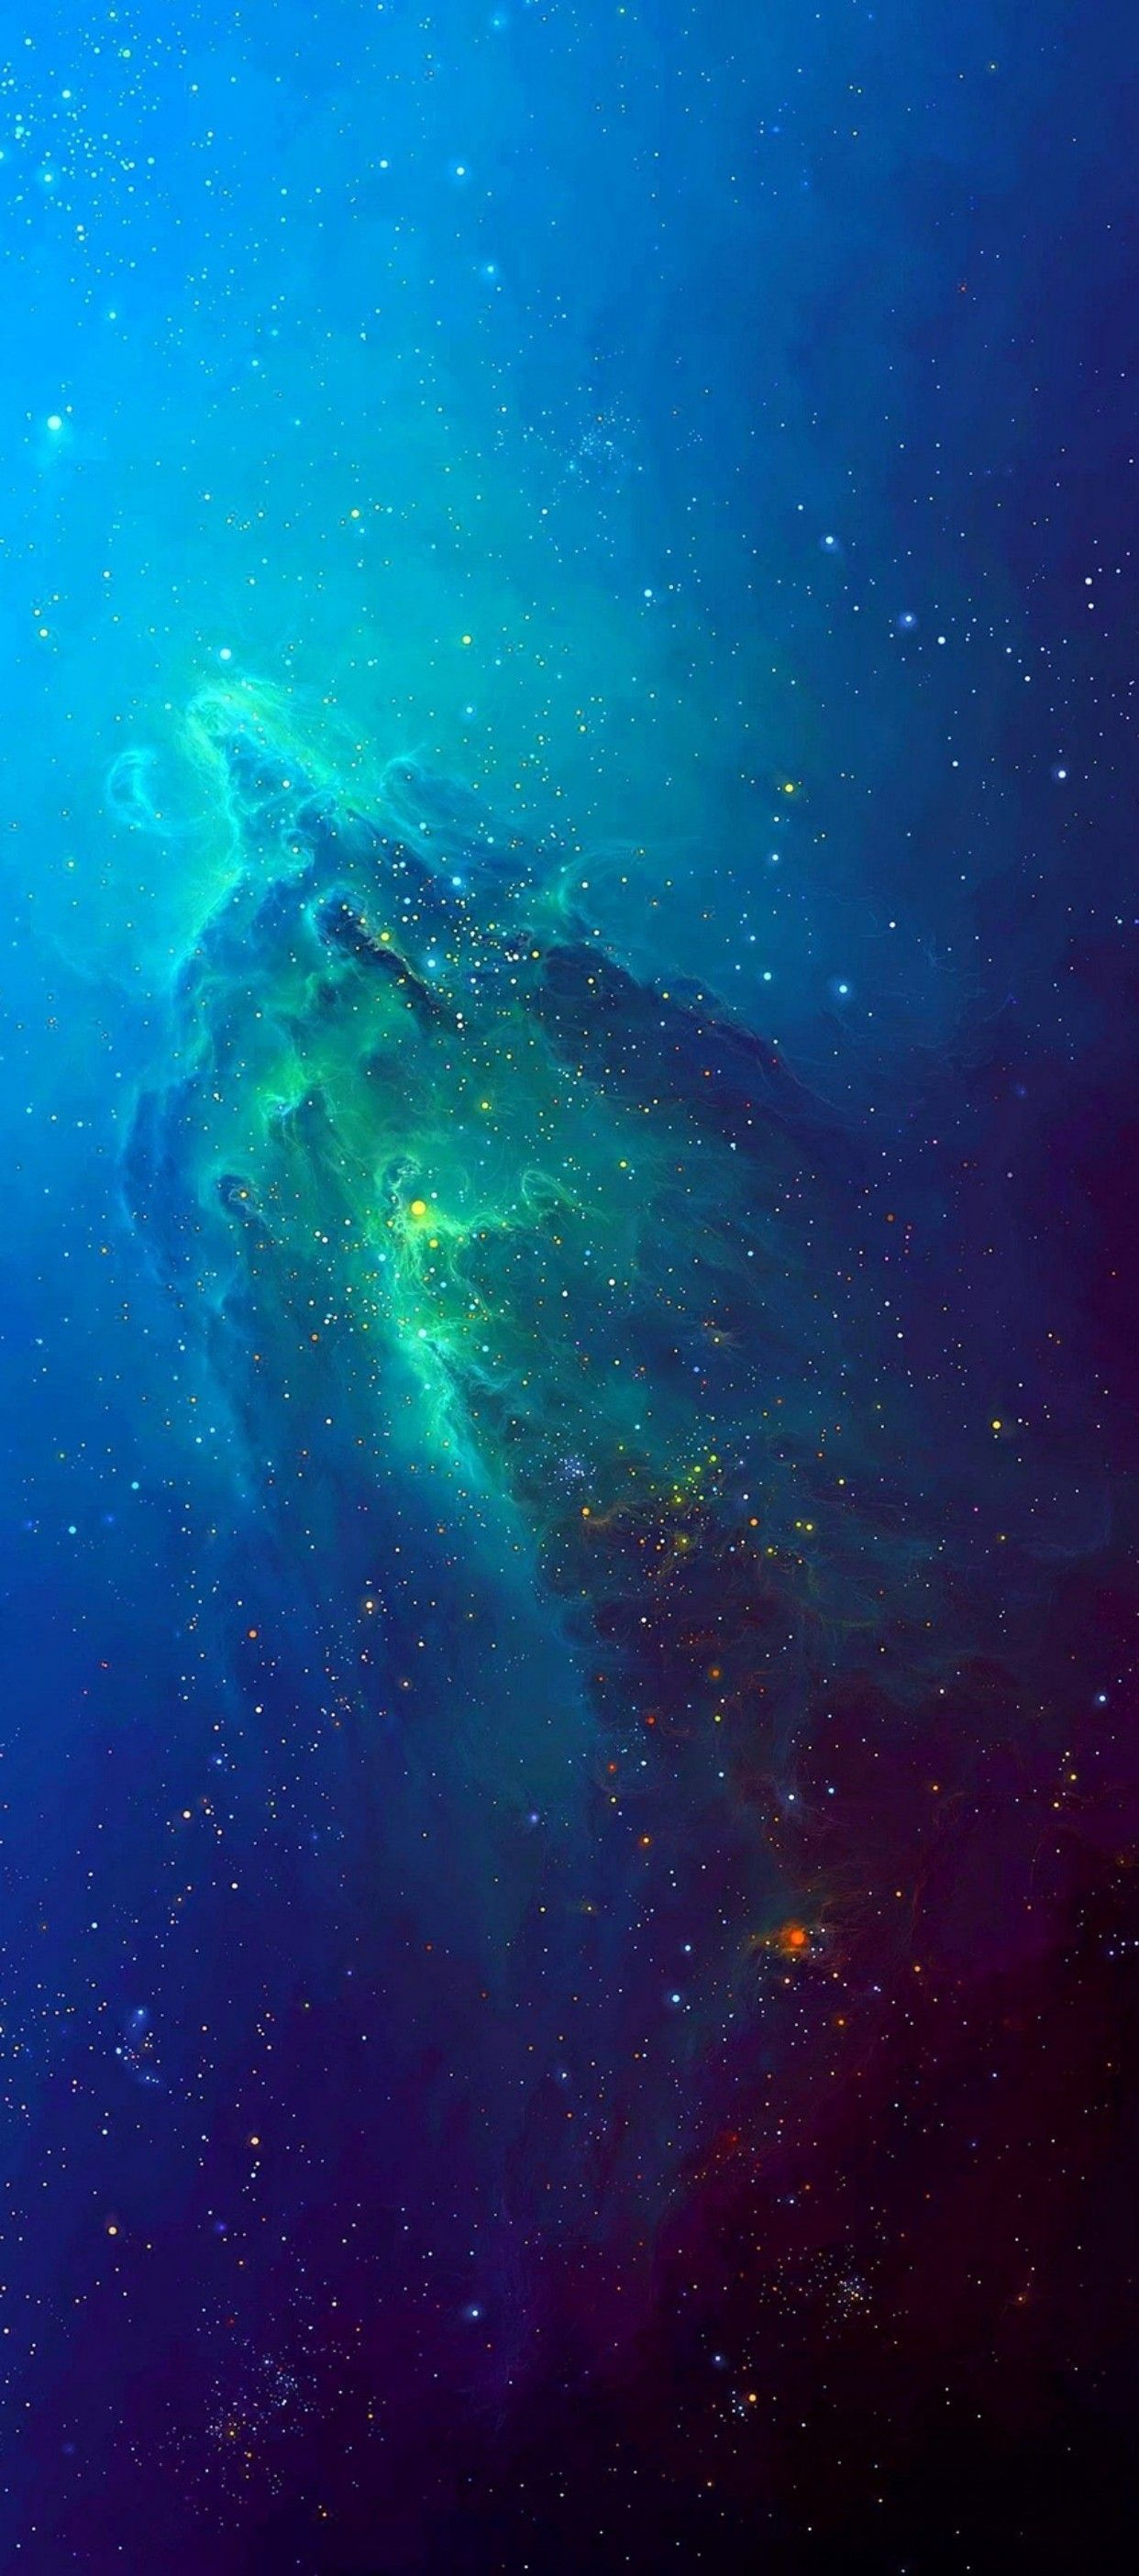 iOS 11, iPhone X, stars, space, blue, aqua, abstract ...